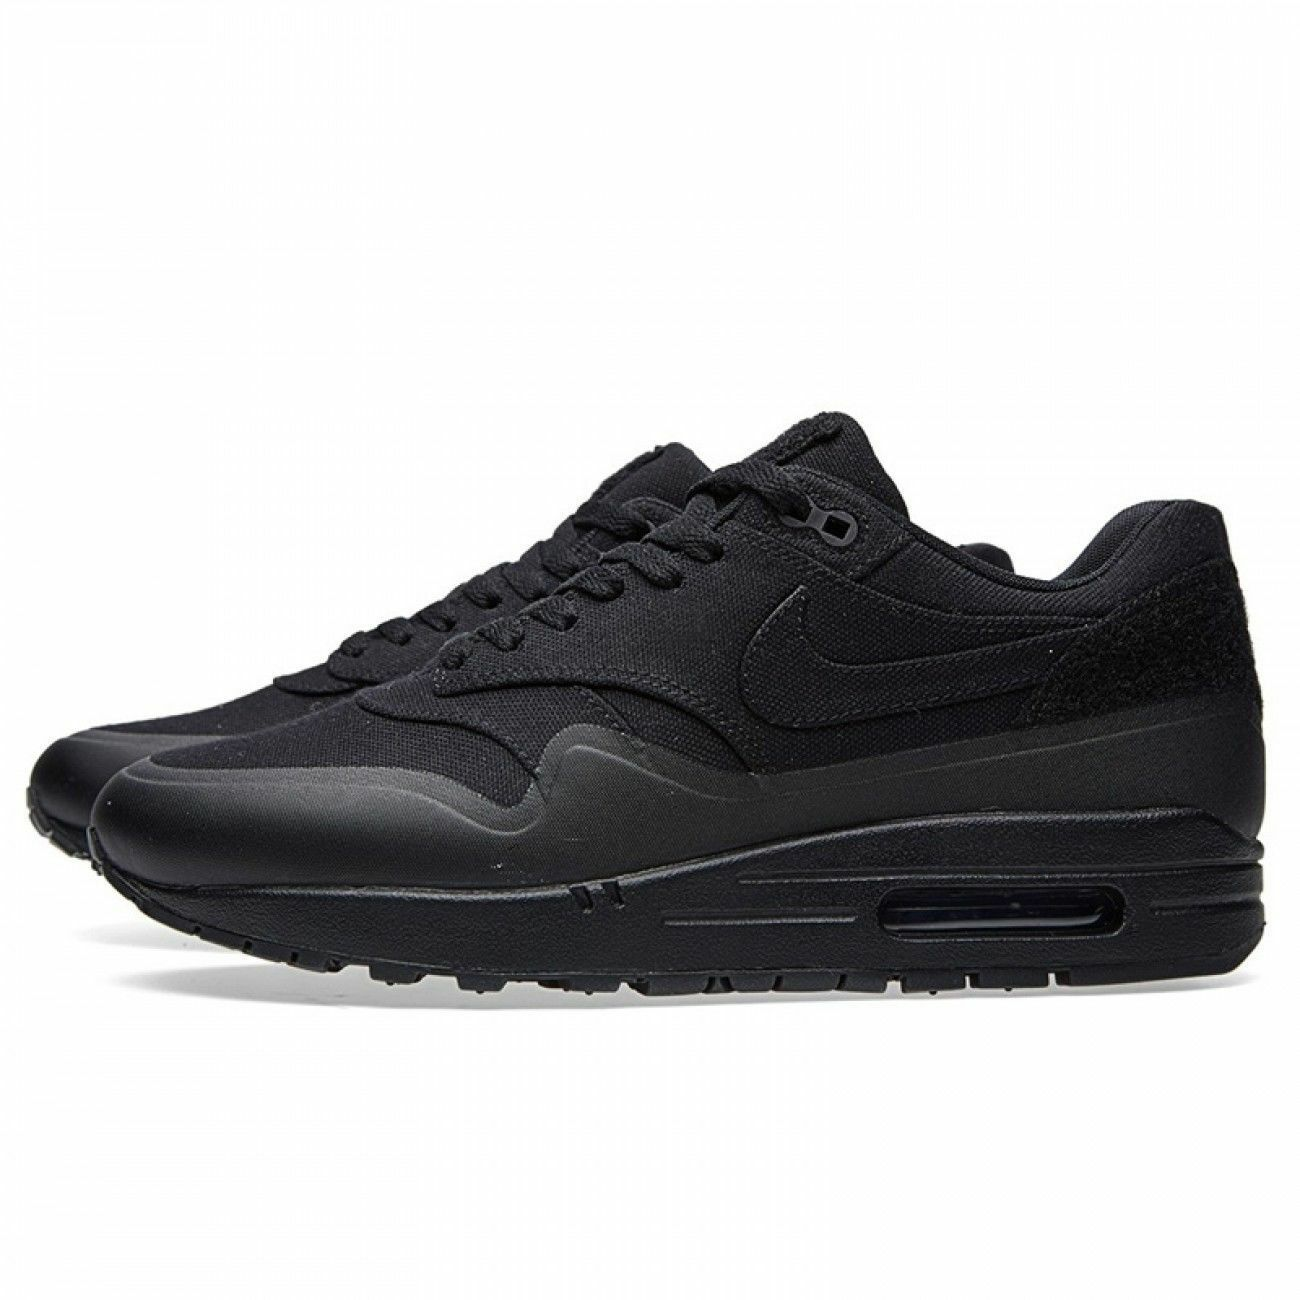 New Nike Air Max 1 V SP Patch Triple Black Size 10.5 704901 001